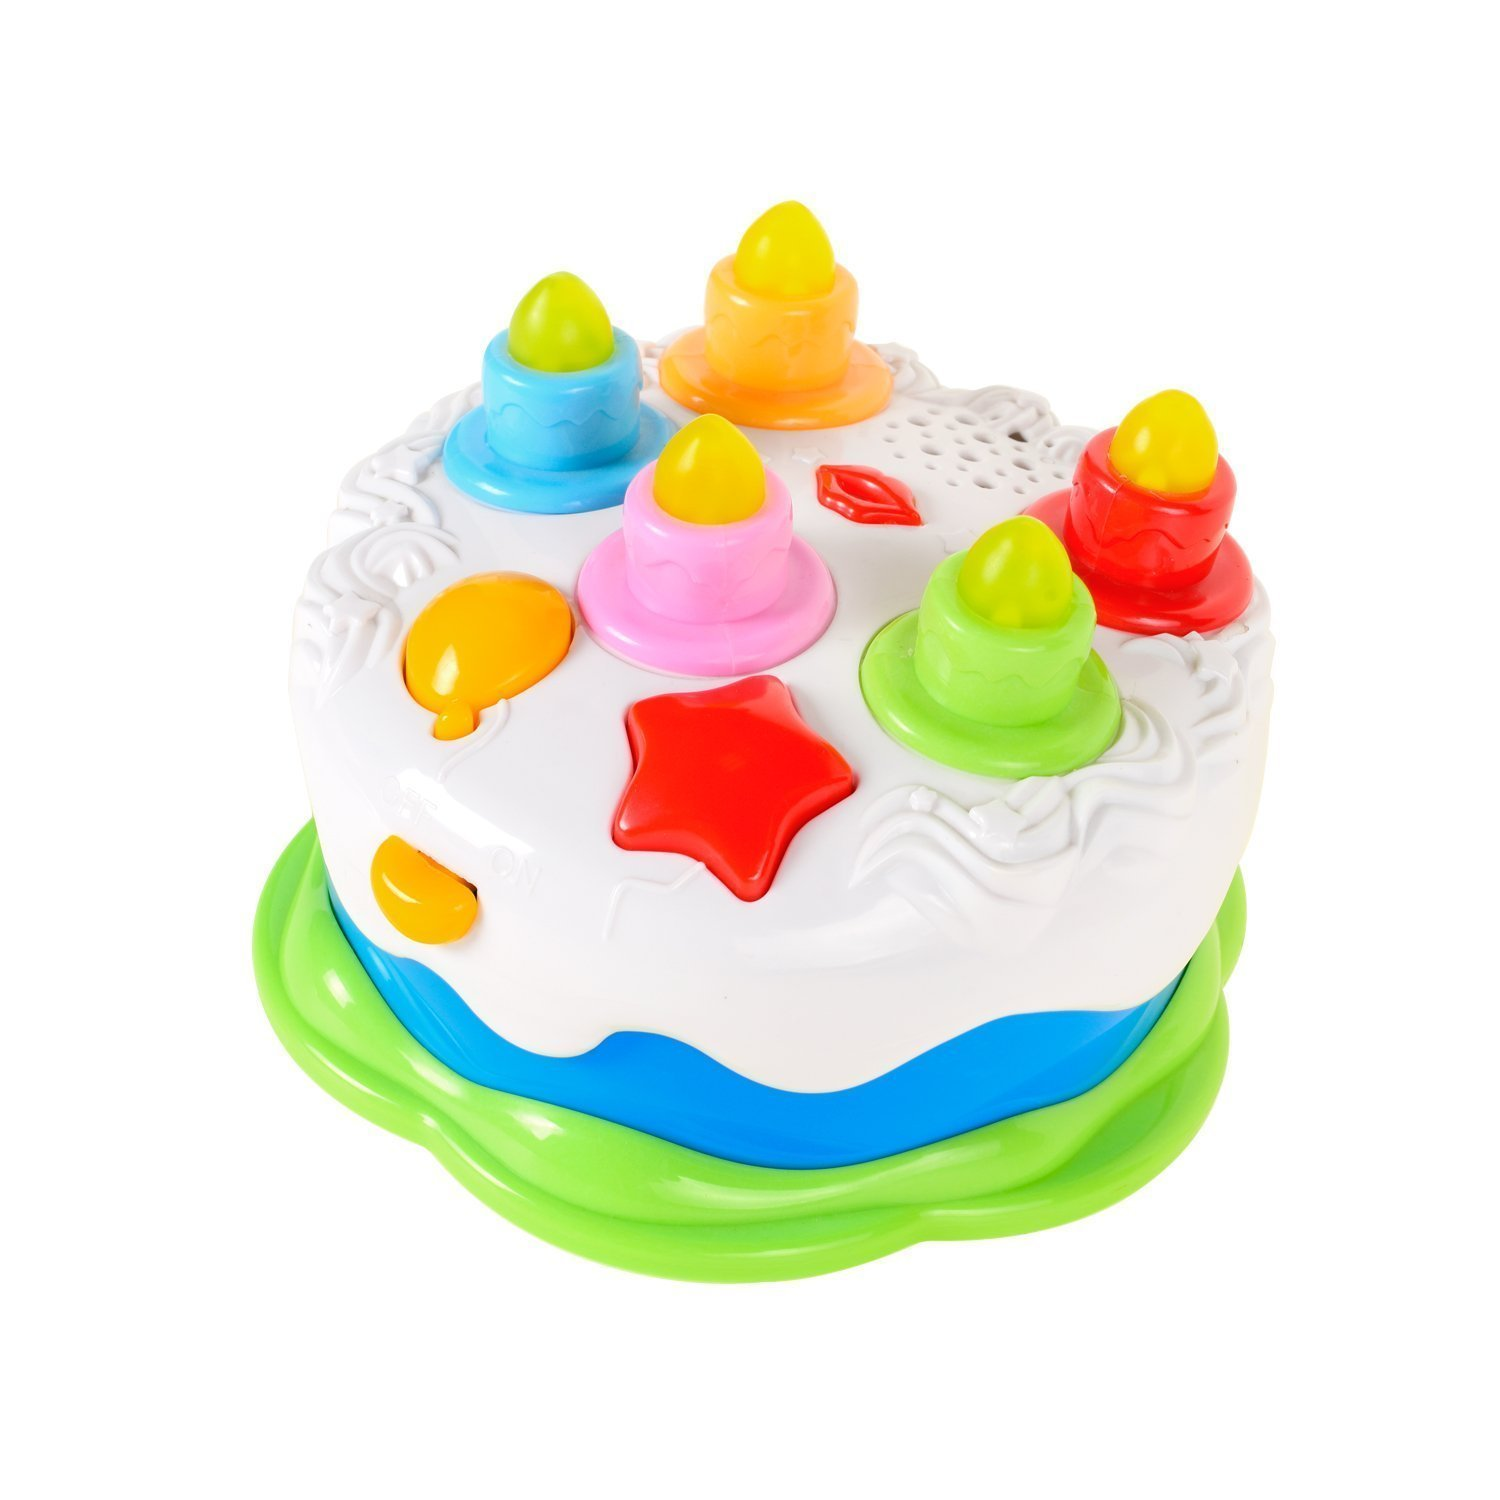 Mallya Kids Birthday Cake Toy for Baby & Toddlers with Counting Candles & Music, Gift Toys for 1 2 3 4 5 Years Old Boys and Girls